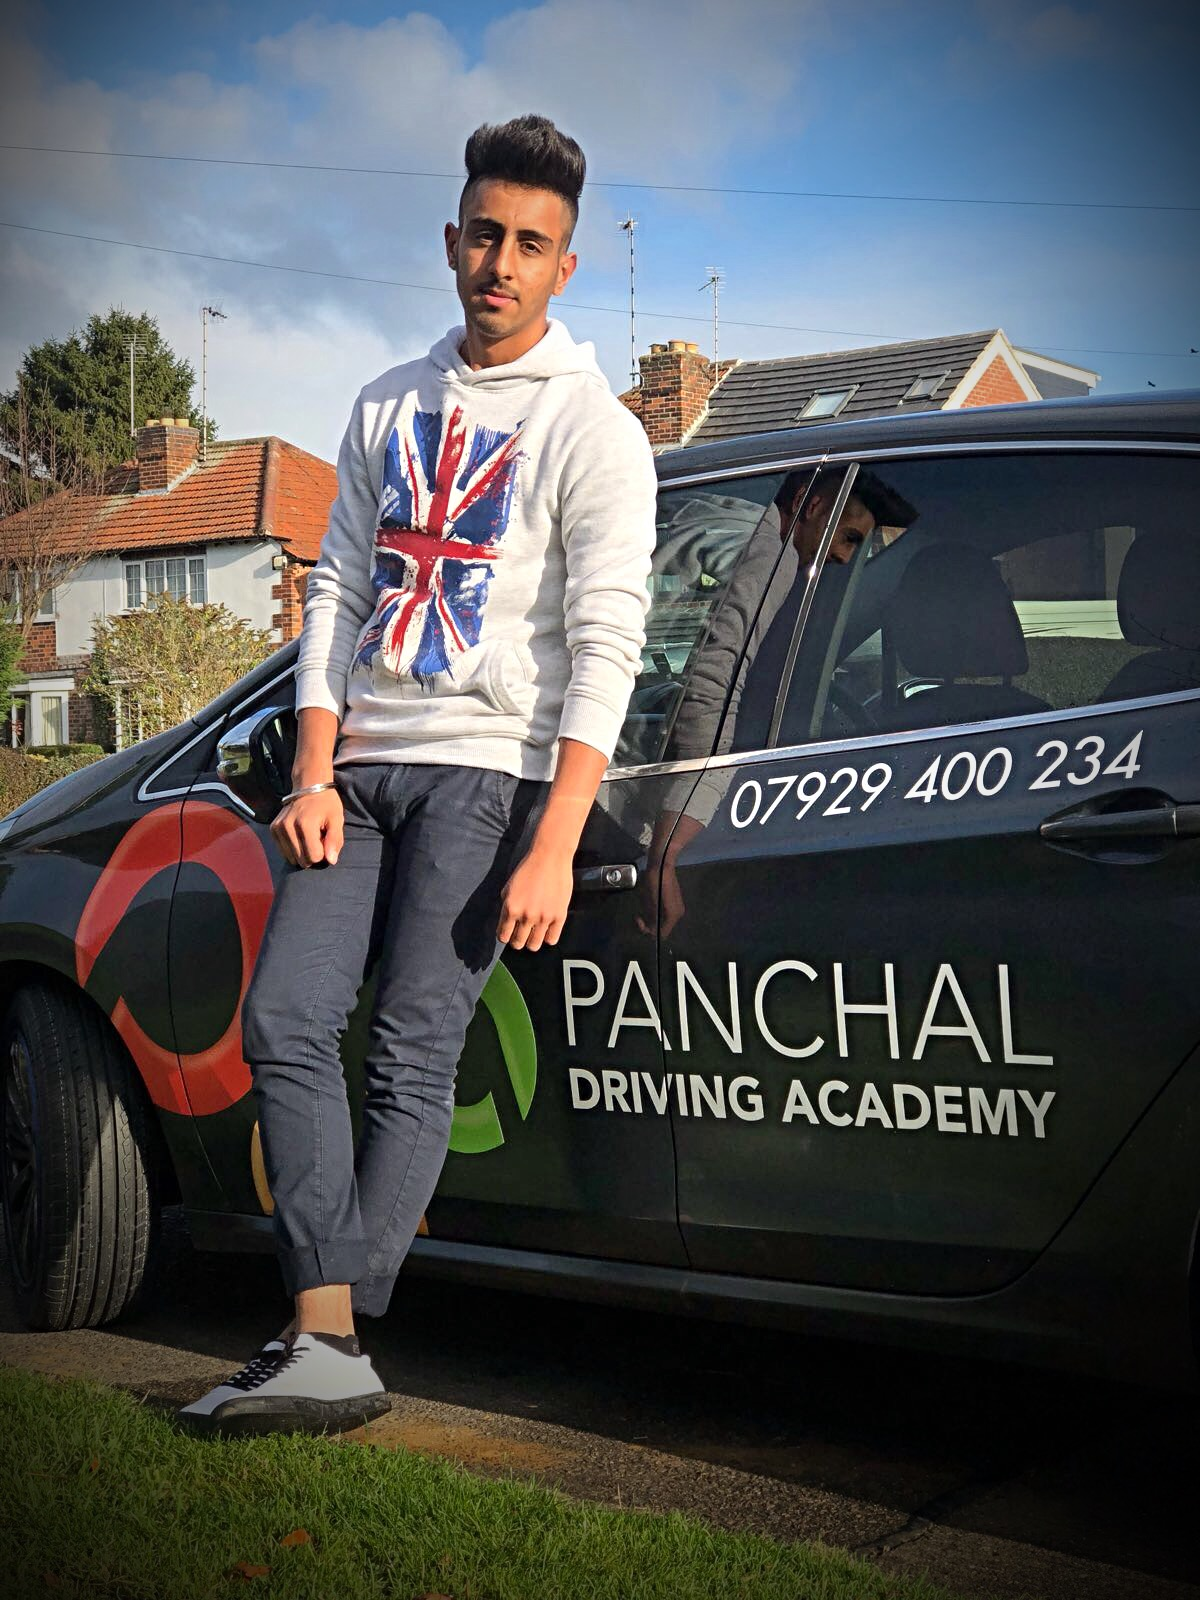 Driving Lessons Leicester - Panchal Driving Academy - Balkar